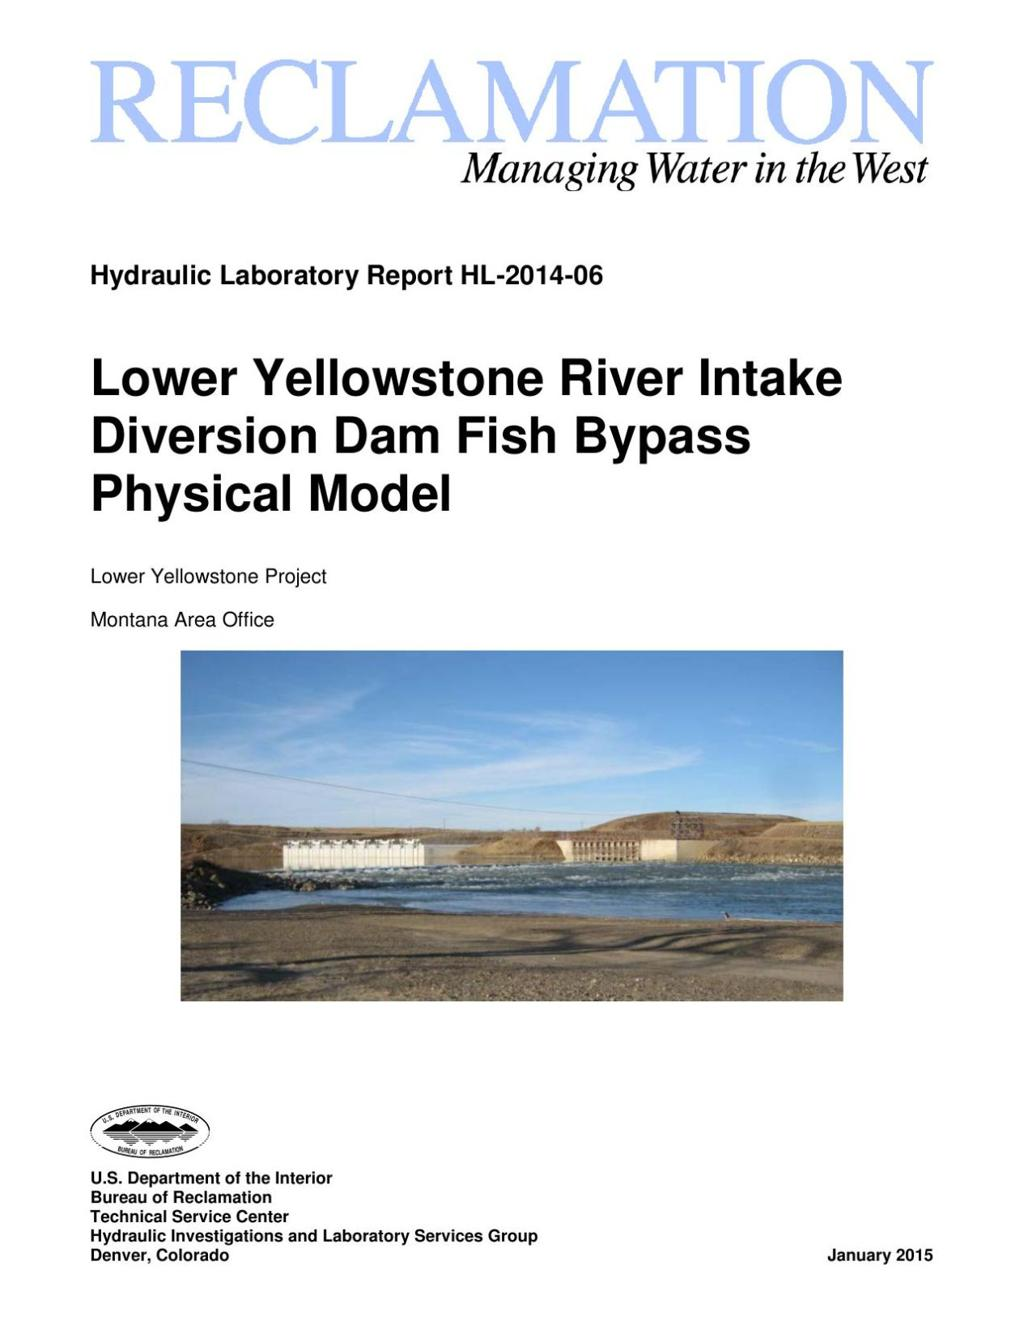 Model proves Yellowstone bypass should work | Montana News